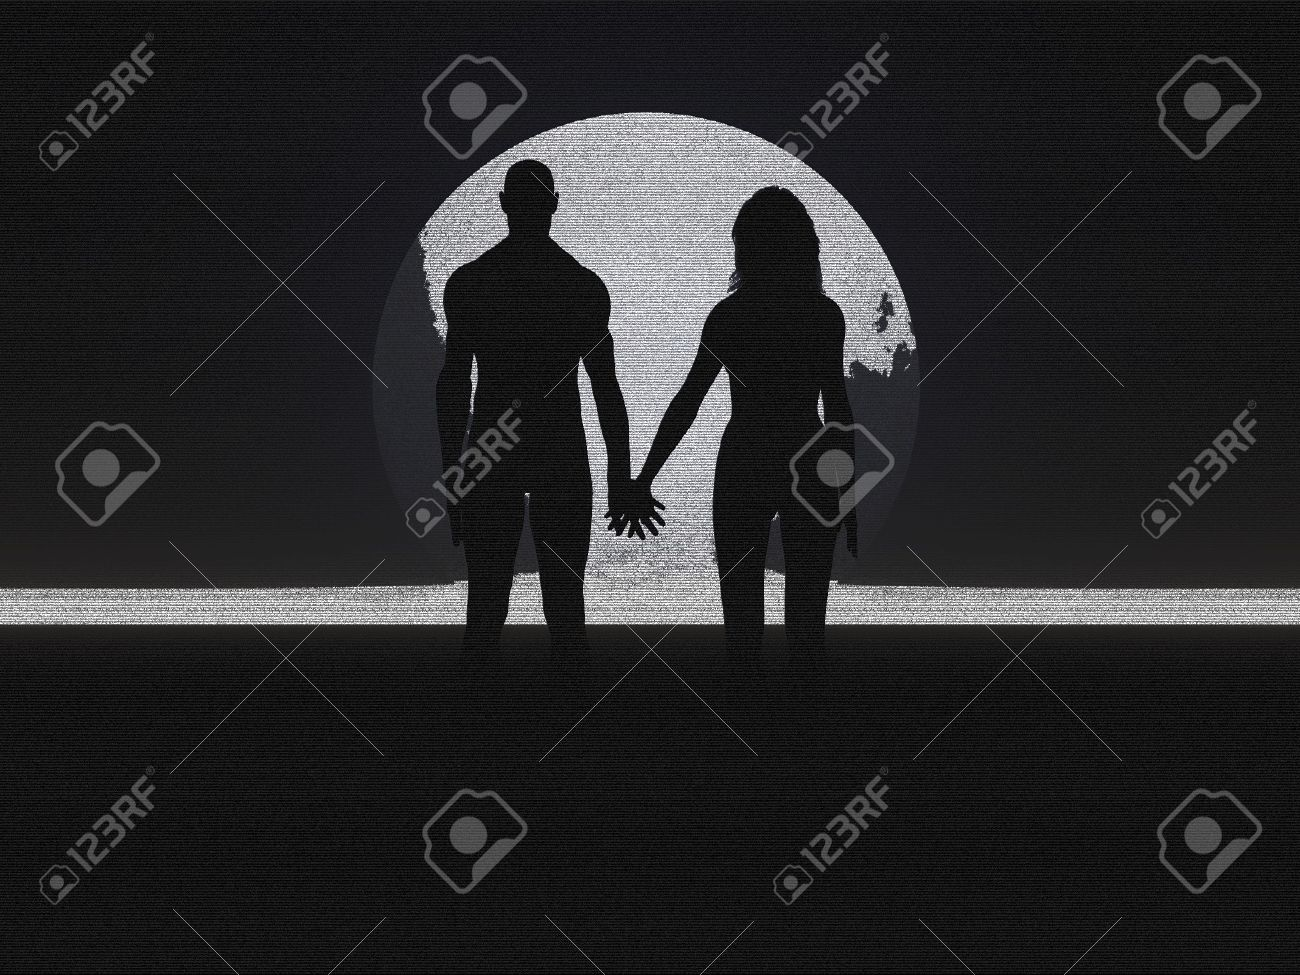 Couple holding hands silhouette pencil sketch